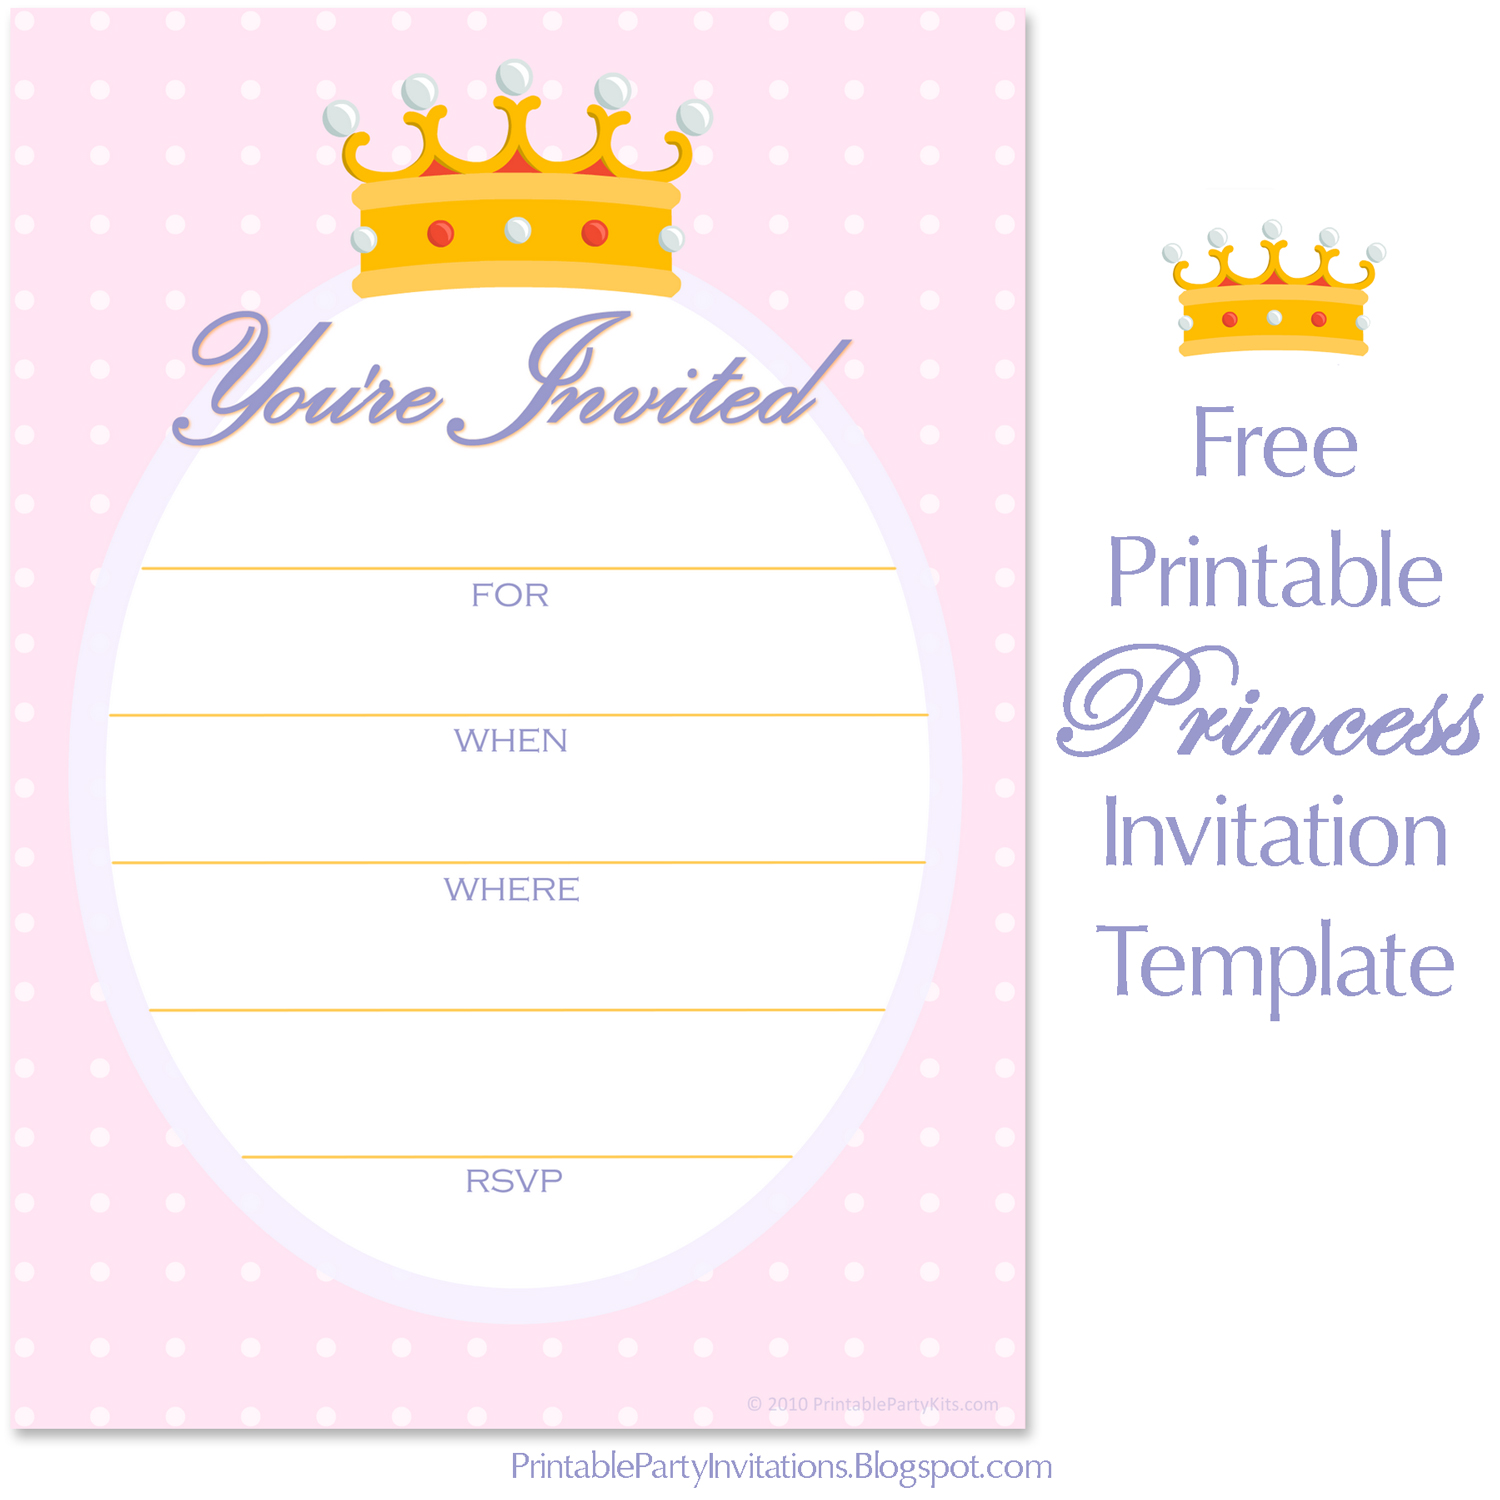 image regarding Printable Princess Invitations called Cant track down subsution for tag [article.human body]--\u003e Absolutely free